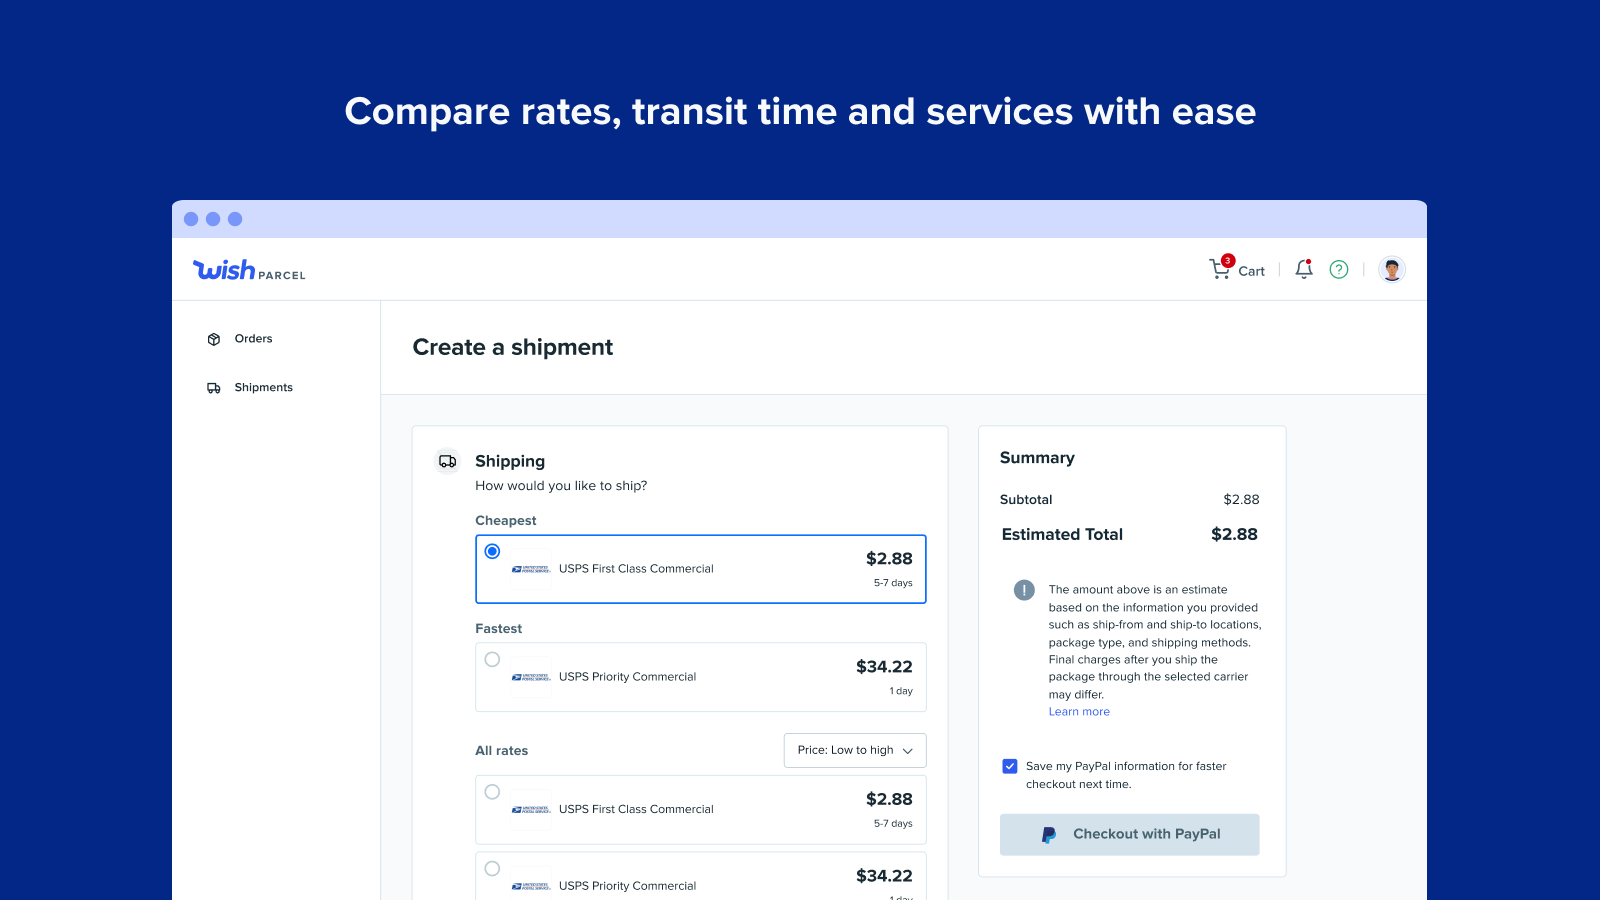 Compare rates, transit time and services with ease